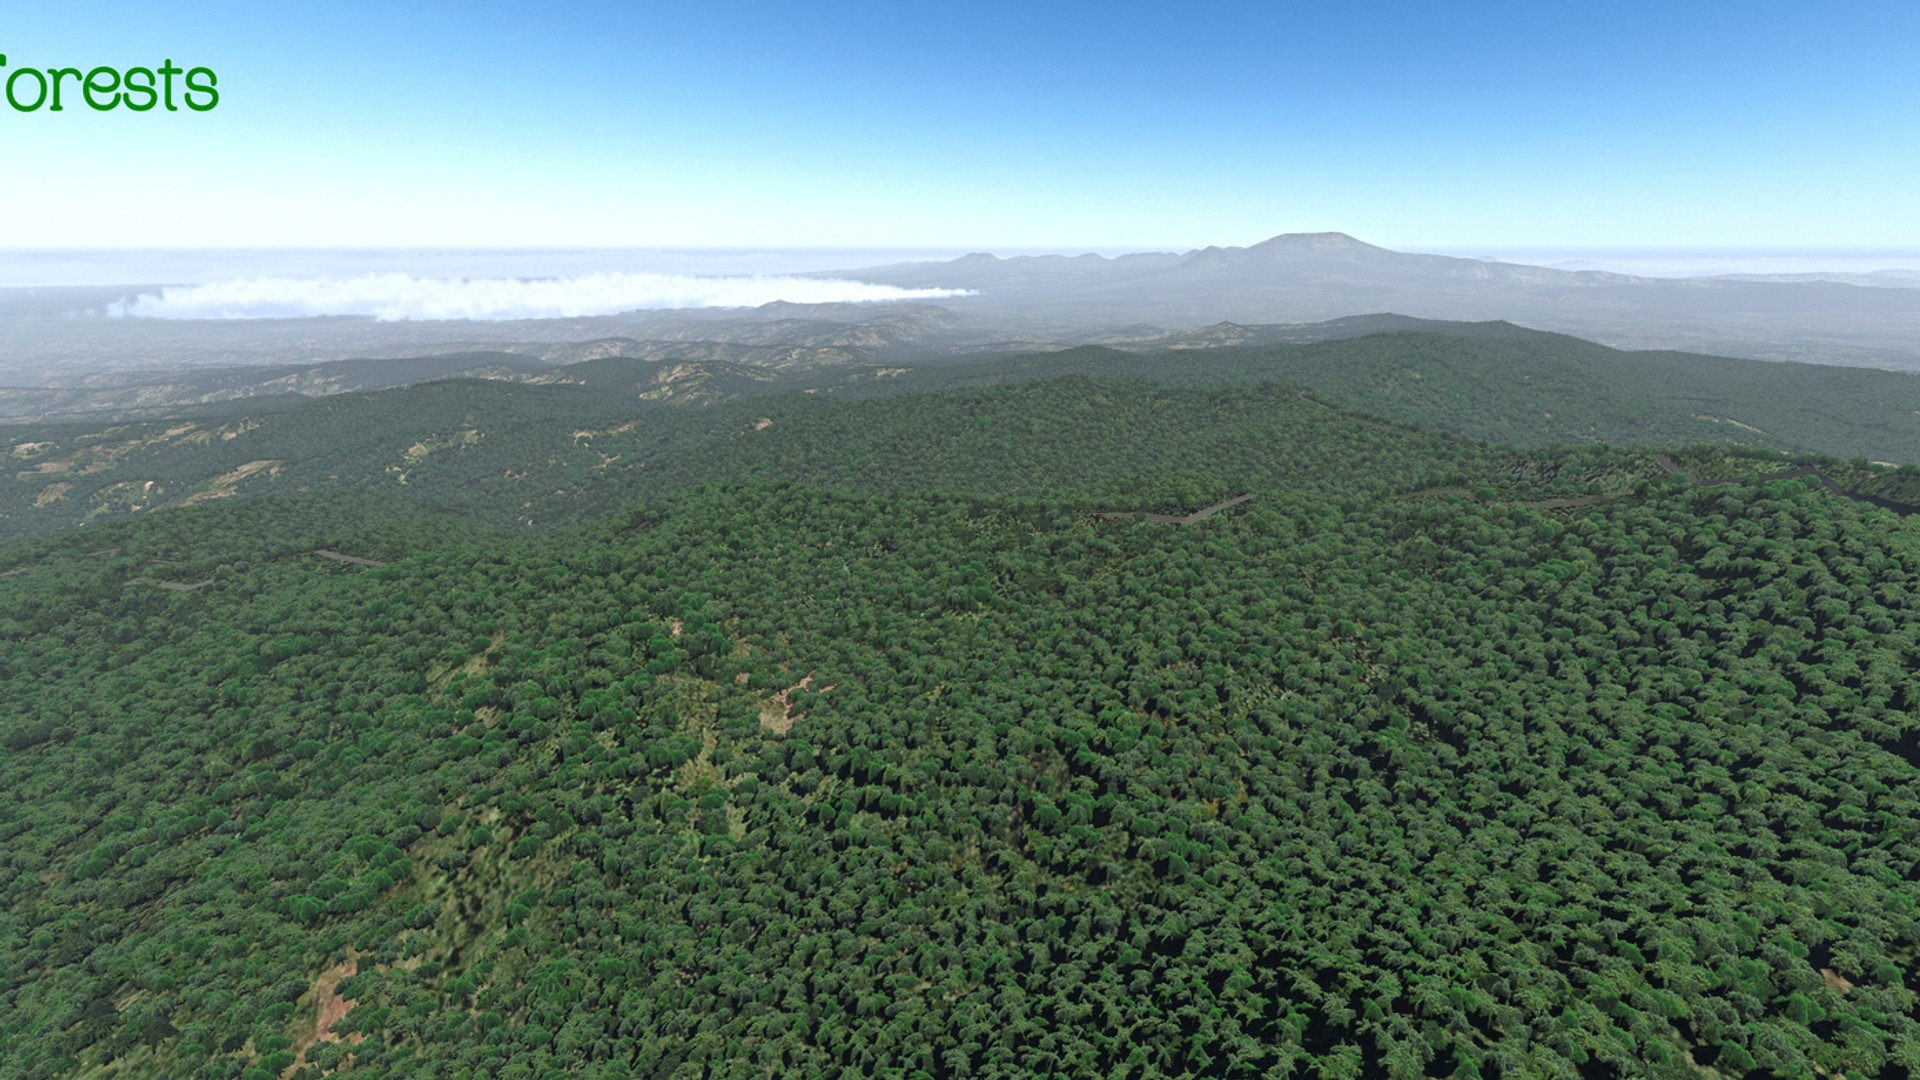 Global_Forests_Mexico.jpg